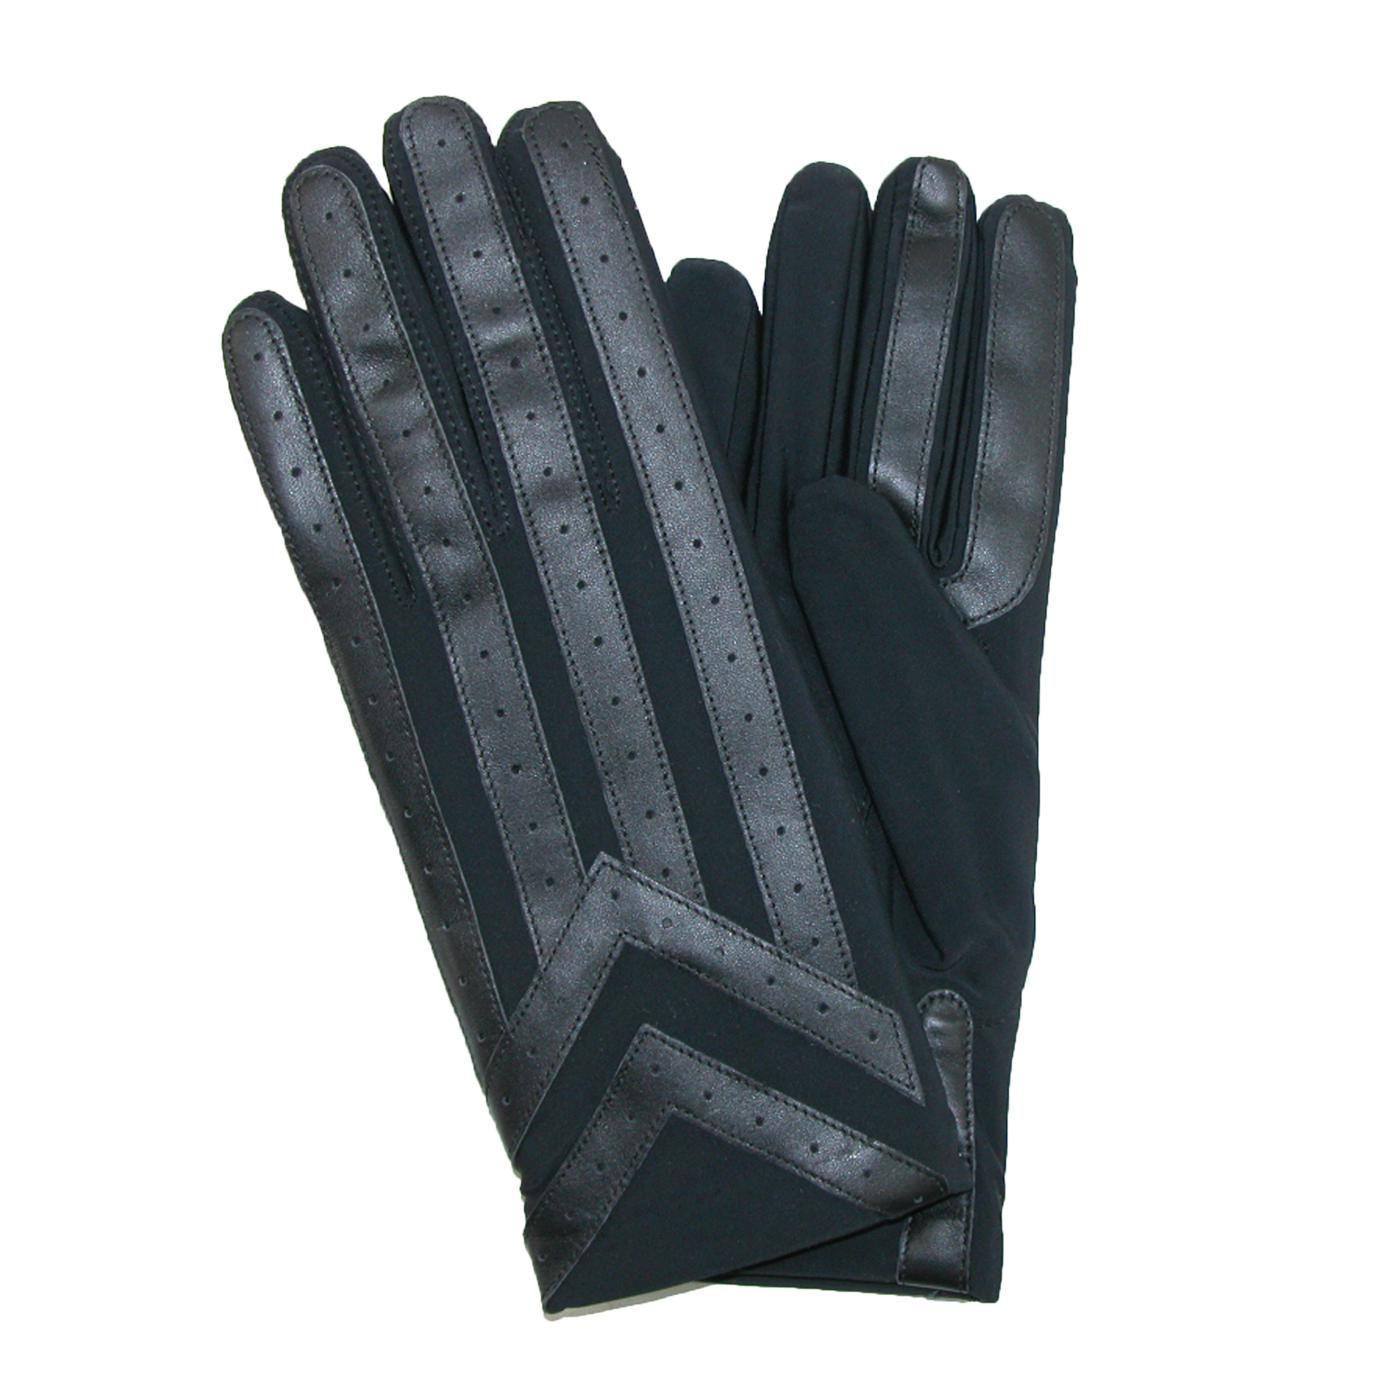 Mens gloves for driving - Totes Isotoner Mens Thinsulate Lined Spandex Driving Glove Genuine Leather Palm Grips And Finger Protection